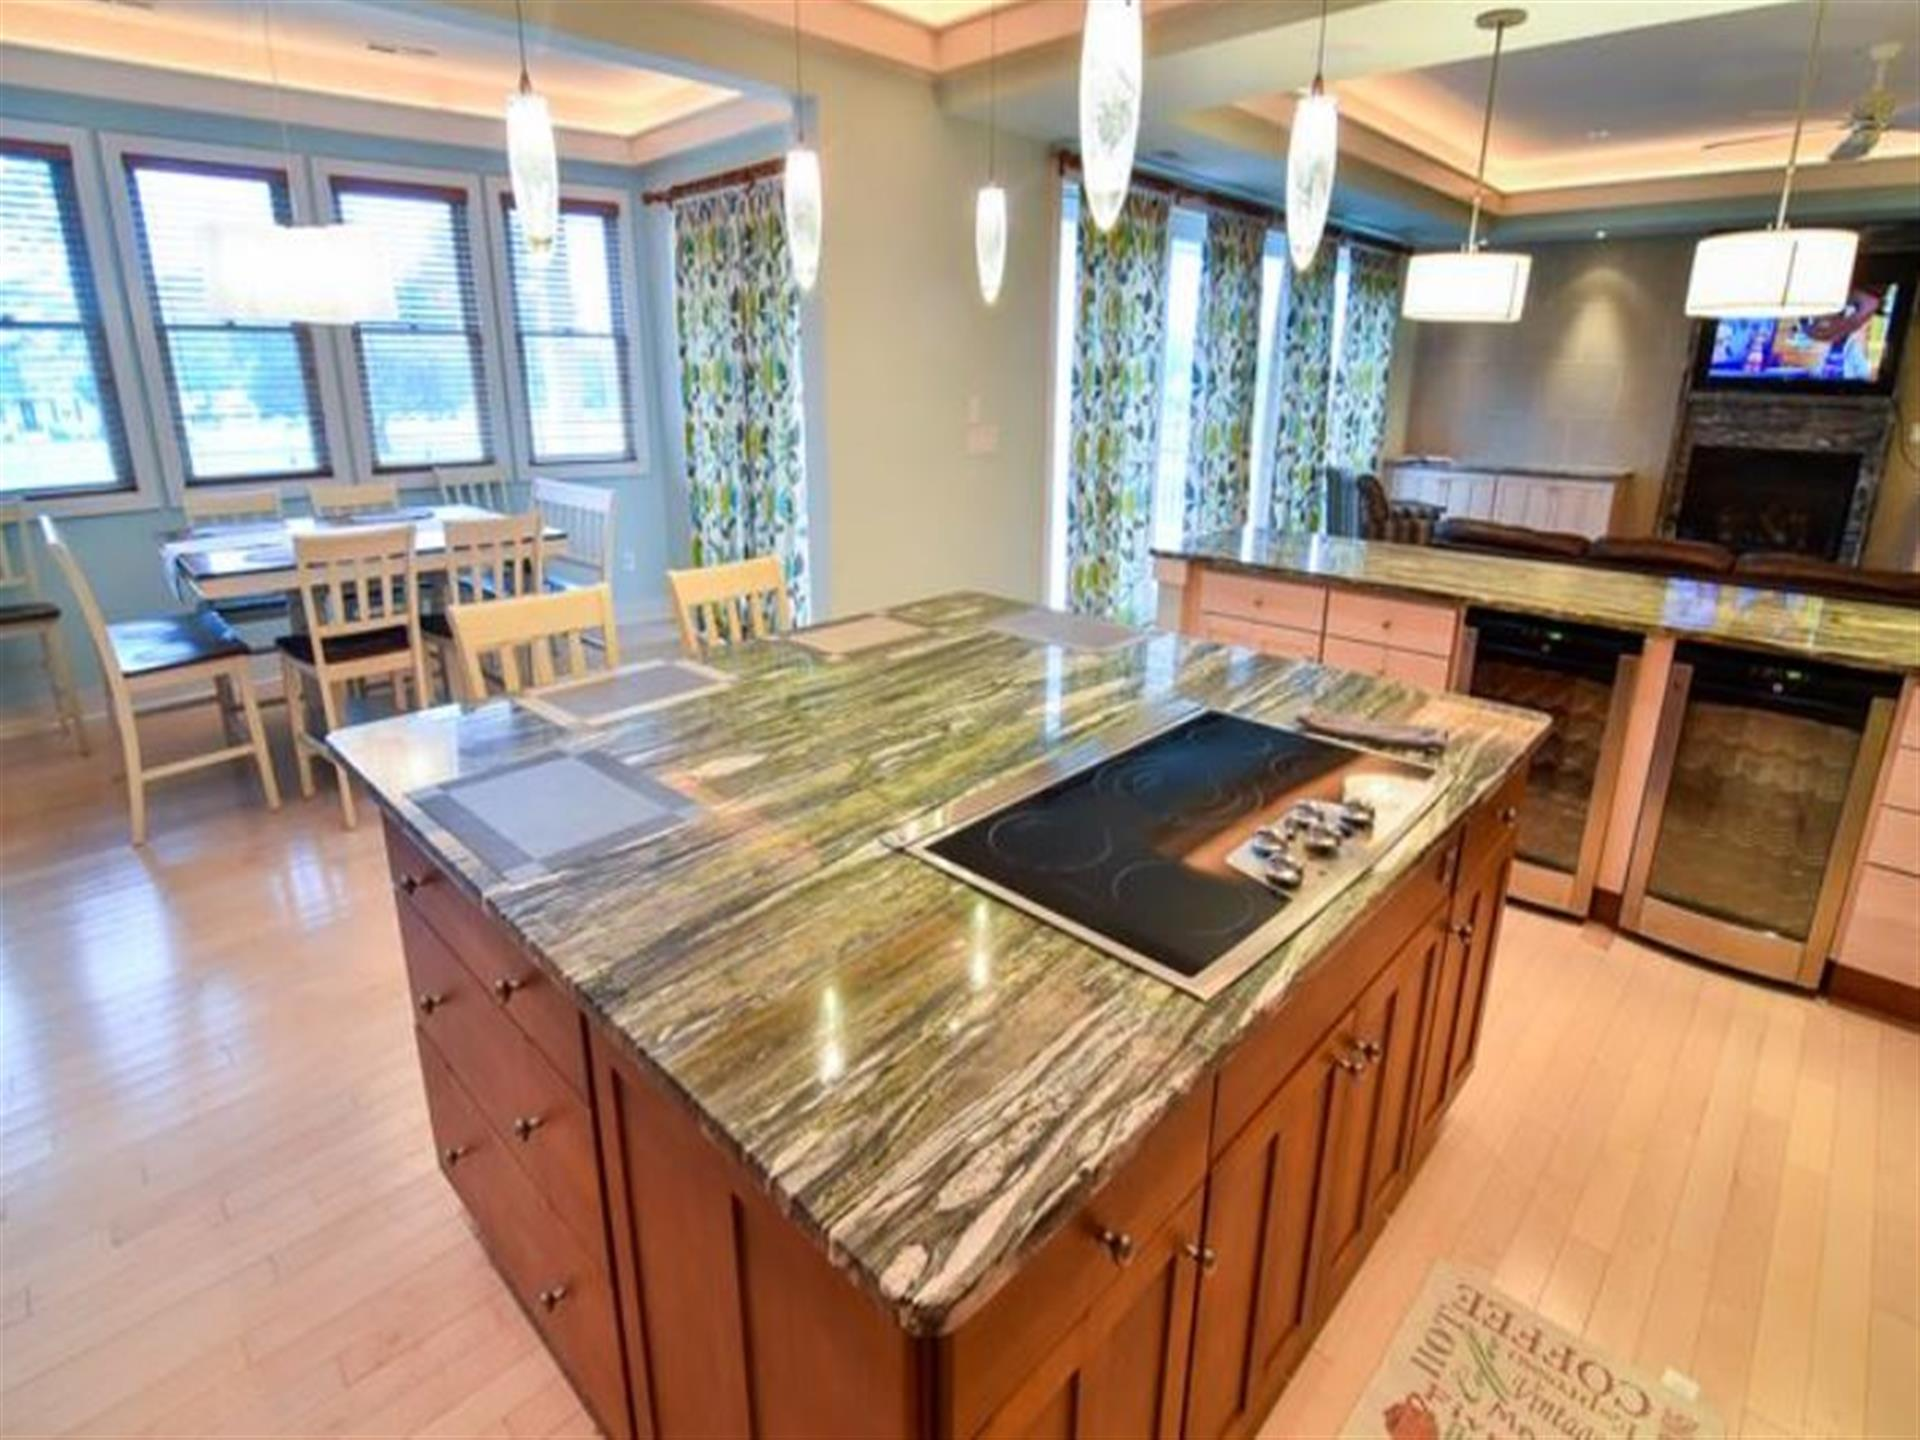 kitchen with middle island, counter with two wine coolers and a kitchen table